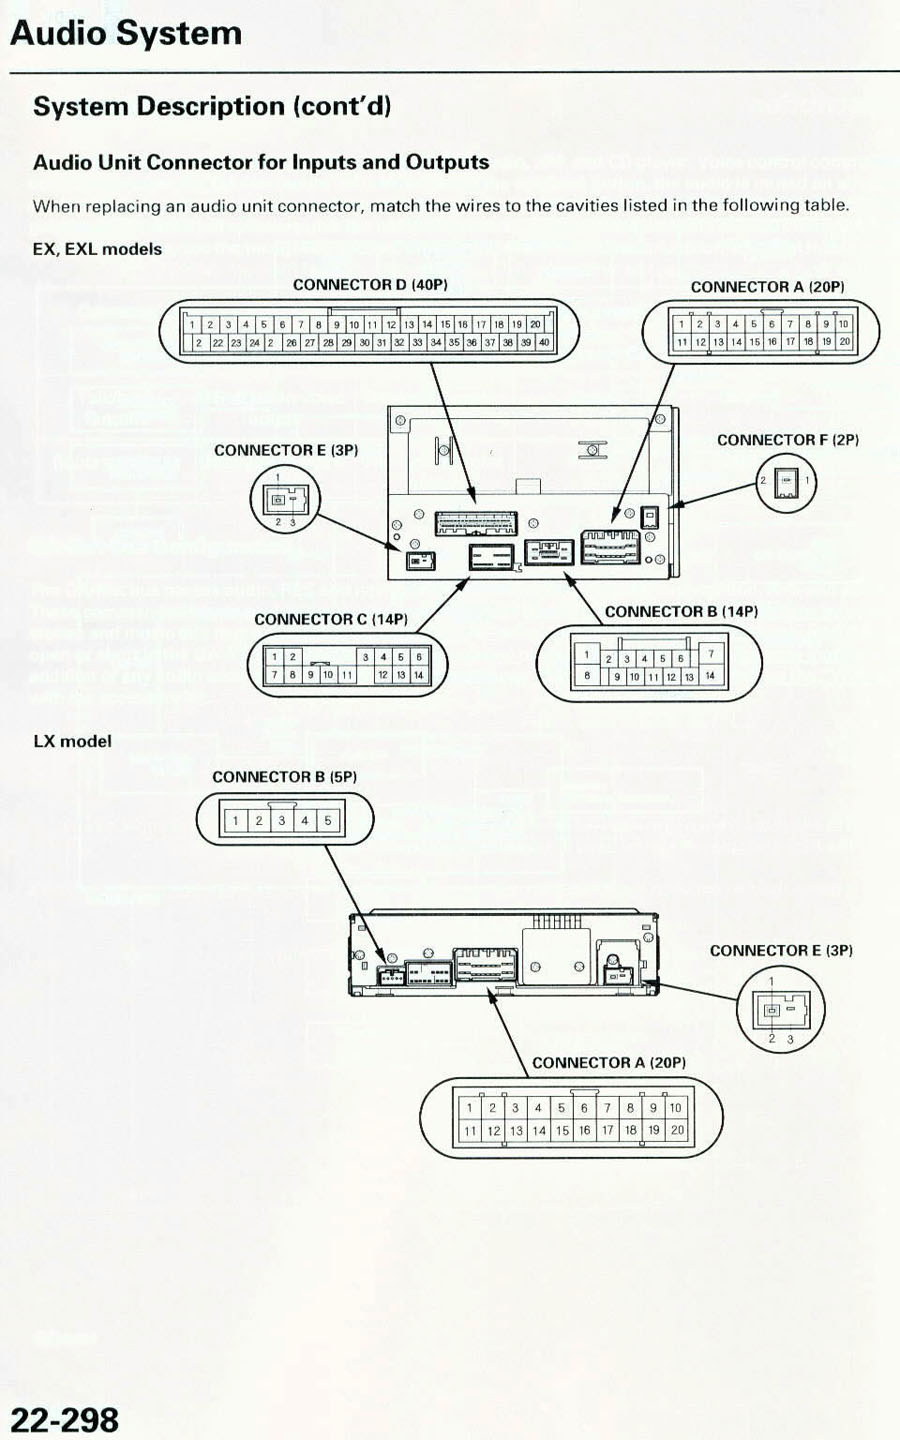 [ZTBE_9966]  DIAGRAM] Honda Pilot 2013 Wiring Diagram FULL Version HD Quality Wiring  Diagram - M1911A1SCHEMATIC9793.CONCESSIONARIABELOGISENIGALLIA.IT | 2013 Honda Pilot Stereo Wiring Diagram |  | concessionariabelogisenigallia.it